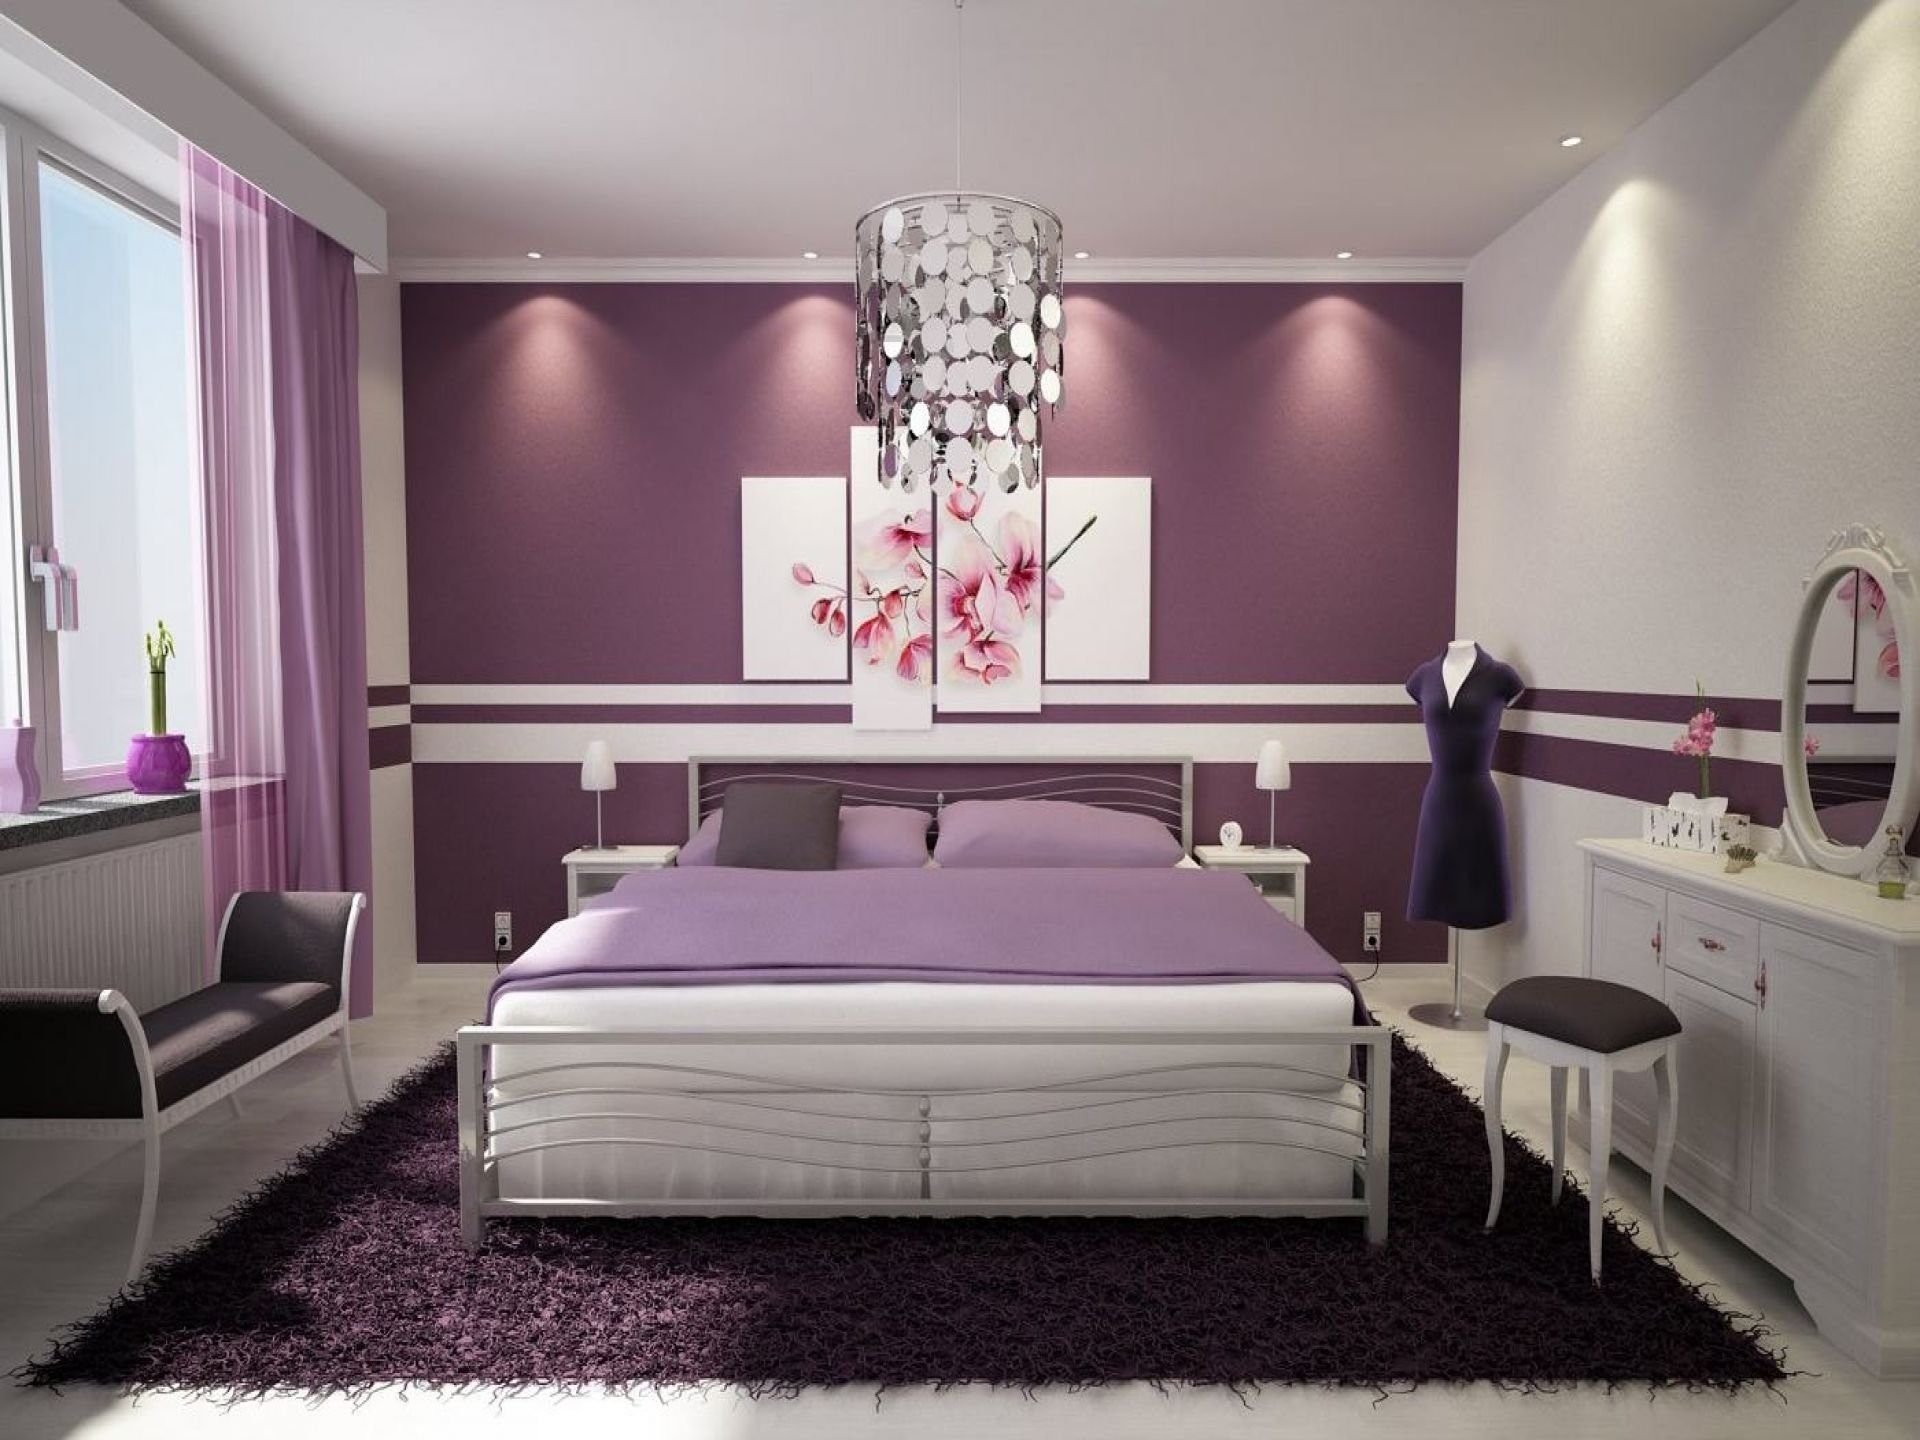 10 Stylish Purple Bedroom Ideas For Adults 23 inspirational purple interior designs you must see 1 2020